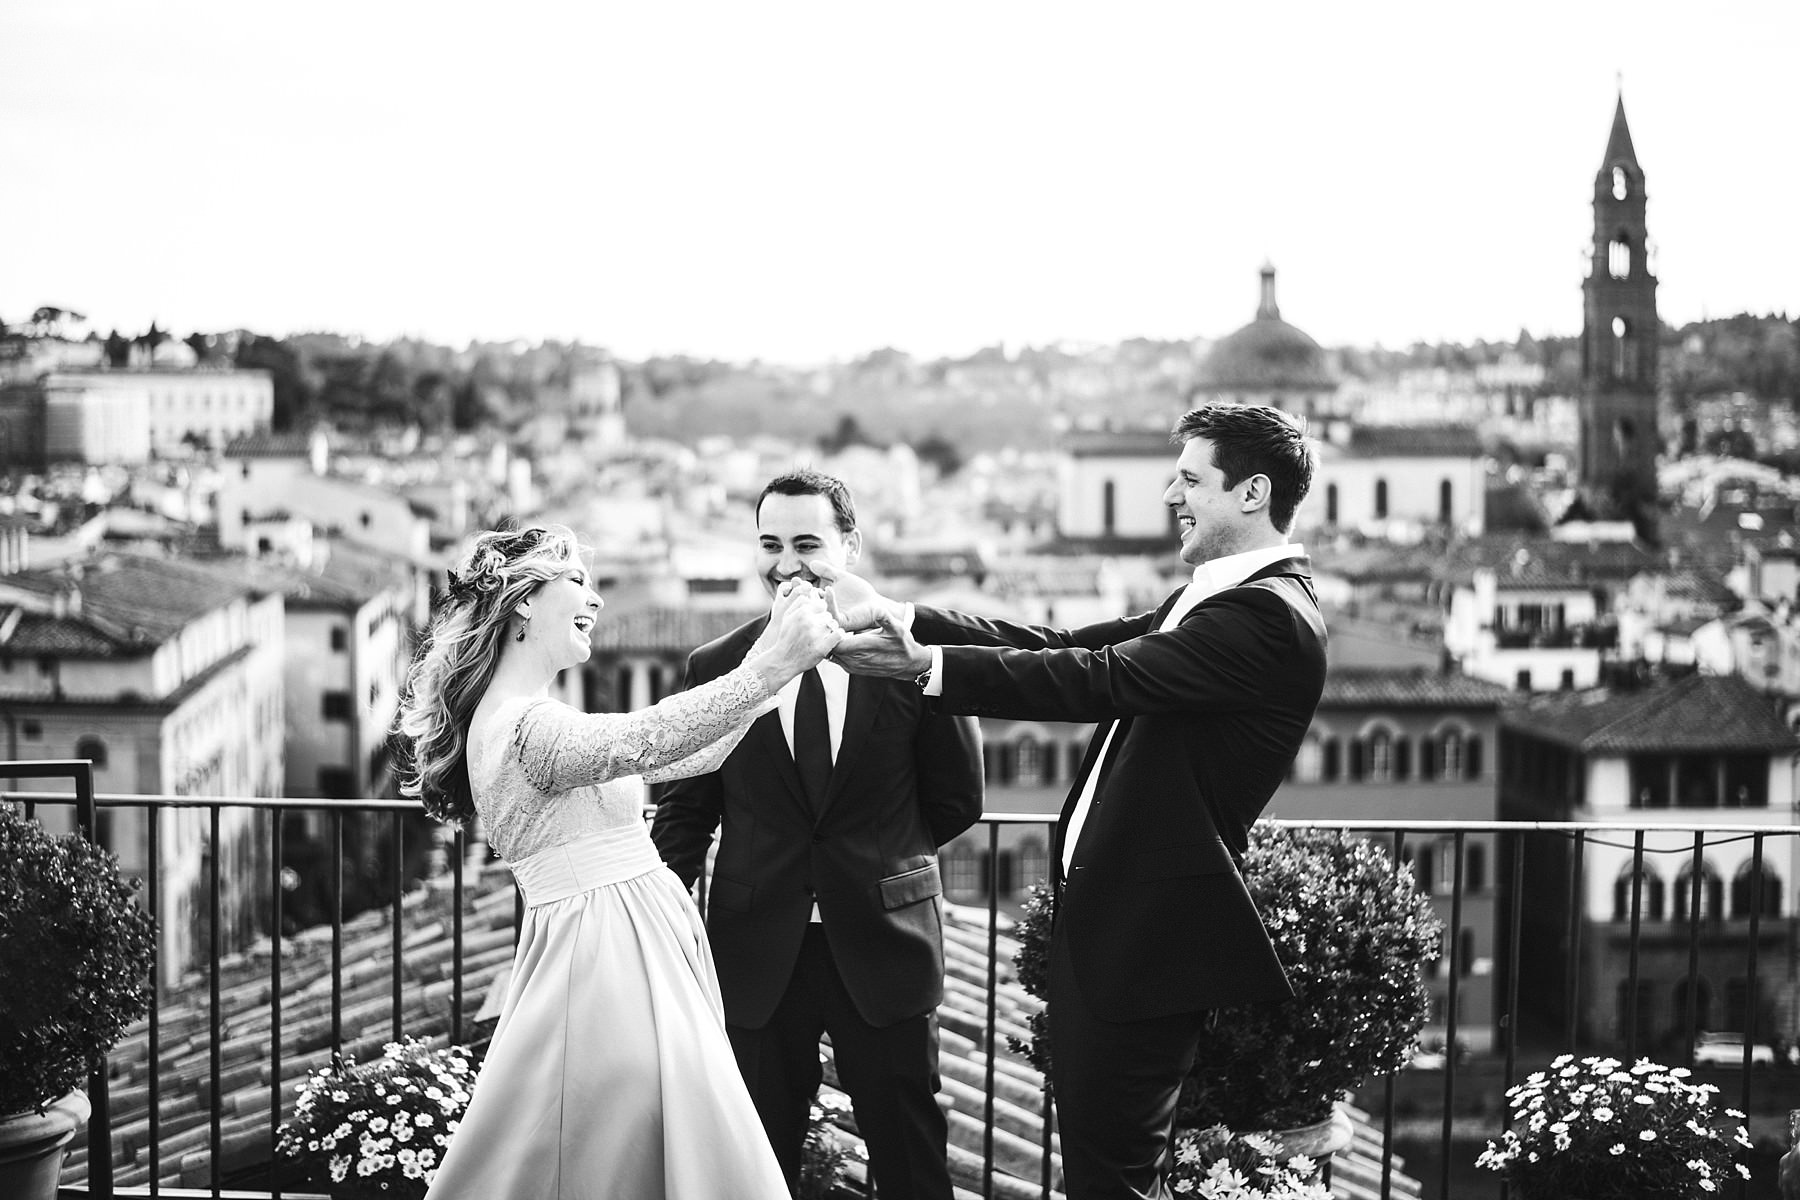 Unforgettable intimate vows renewal photo shoot in Florence at top terrace Antica Torre Tornabuoni located in the most icon center of Florence near Ponte Vecchio